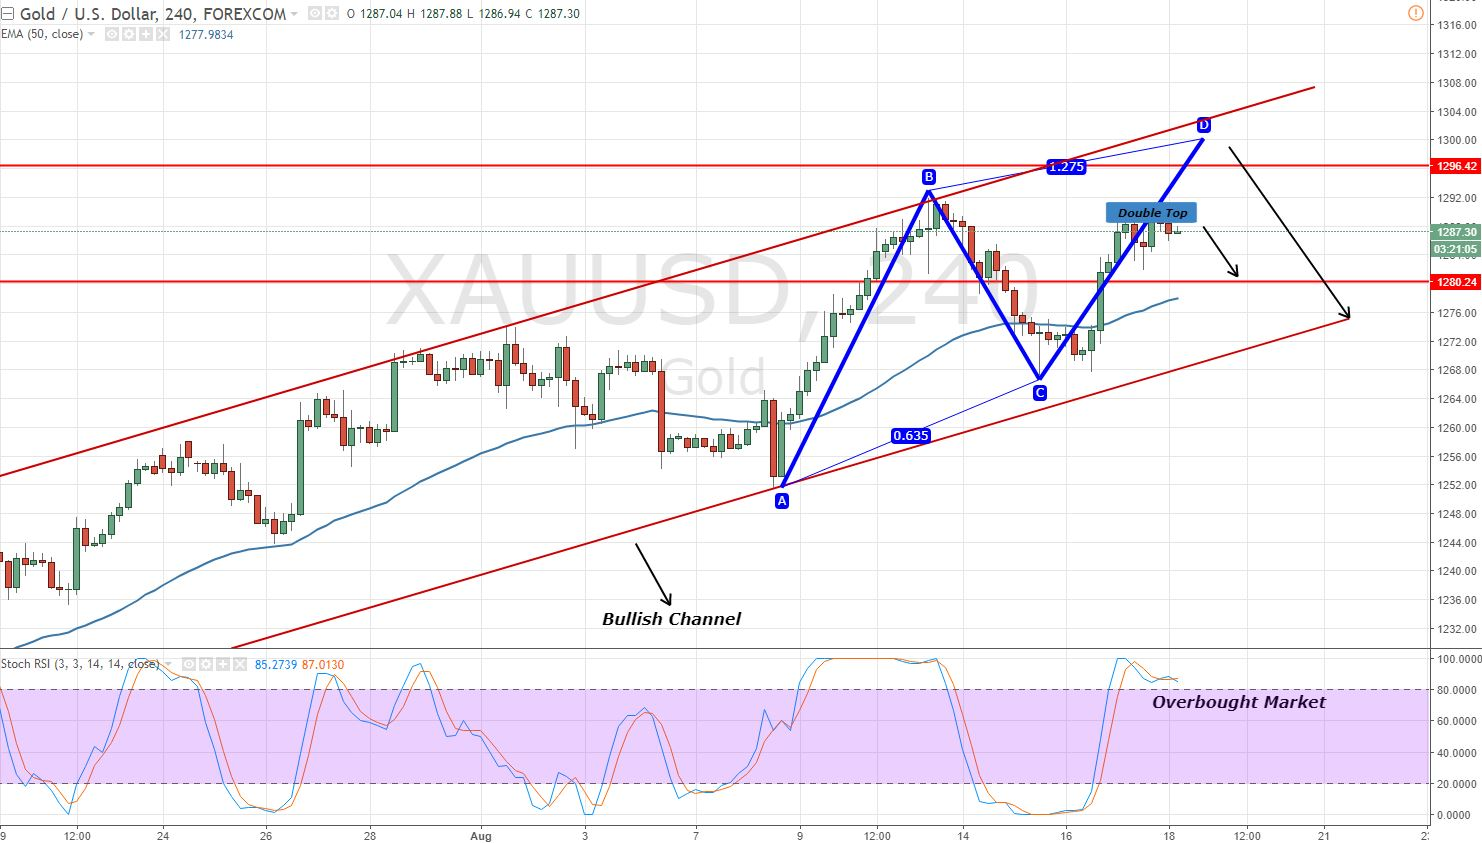 Gold - 4 Hour Chart - Double Top